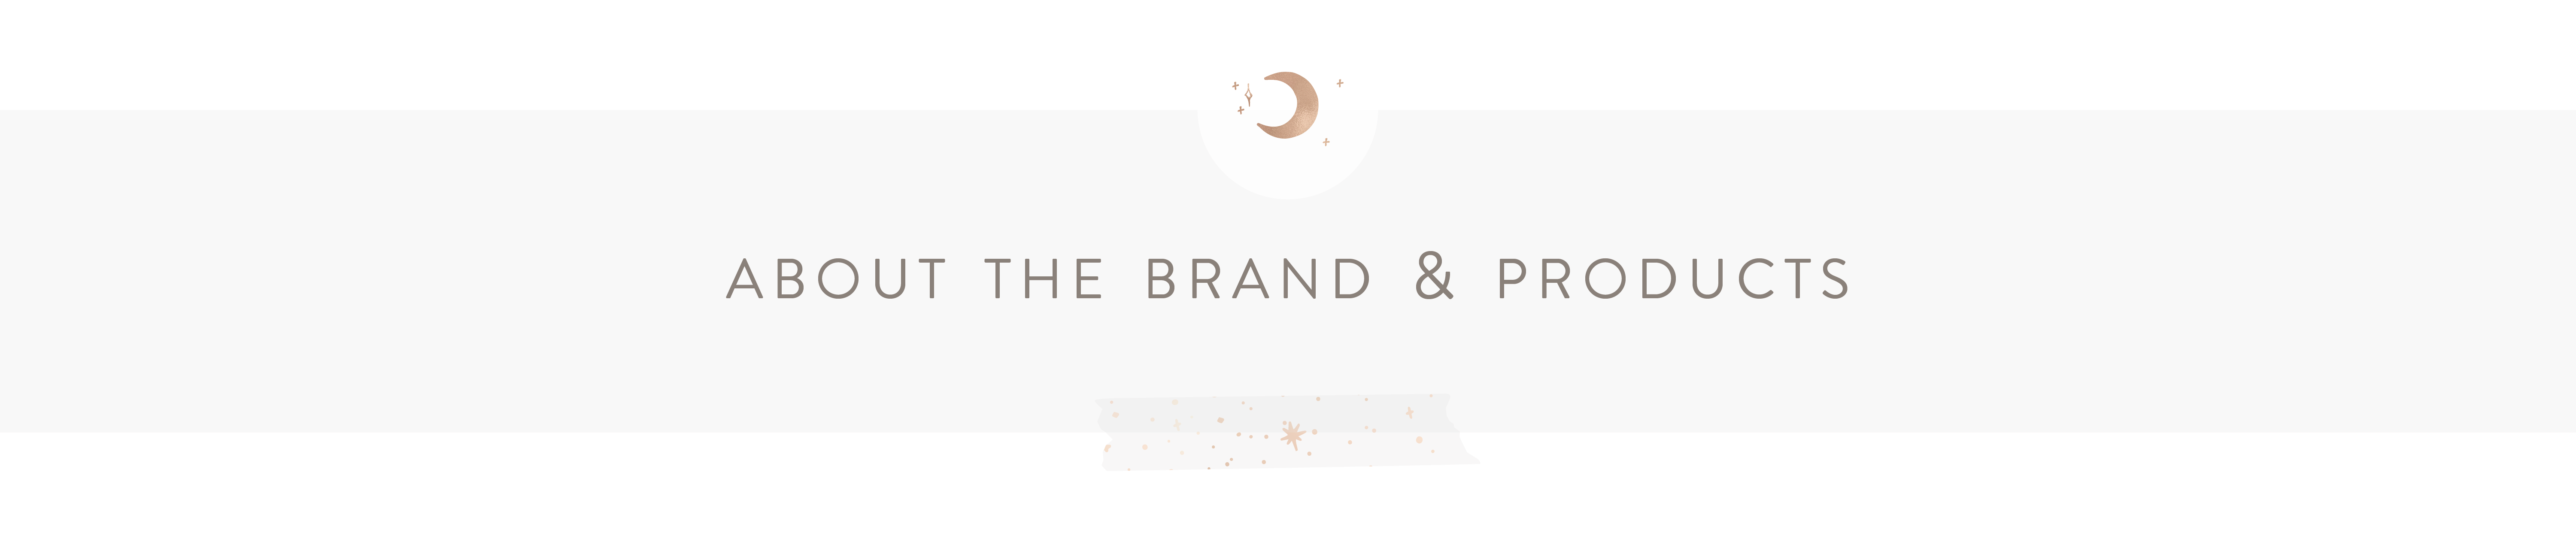 About the Brand & Products : By the Moon - Inspiration Cards & Displays